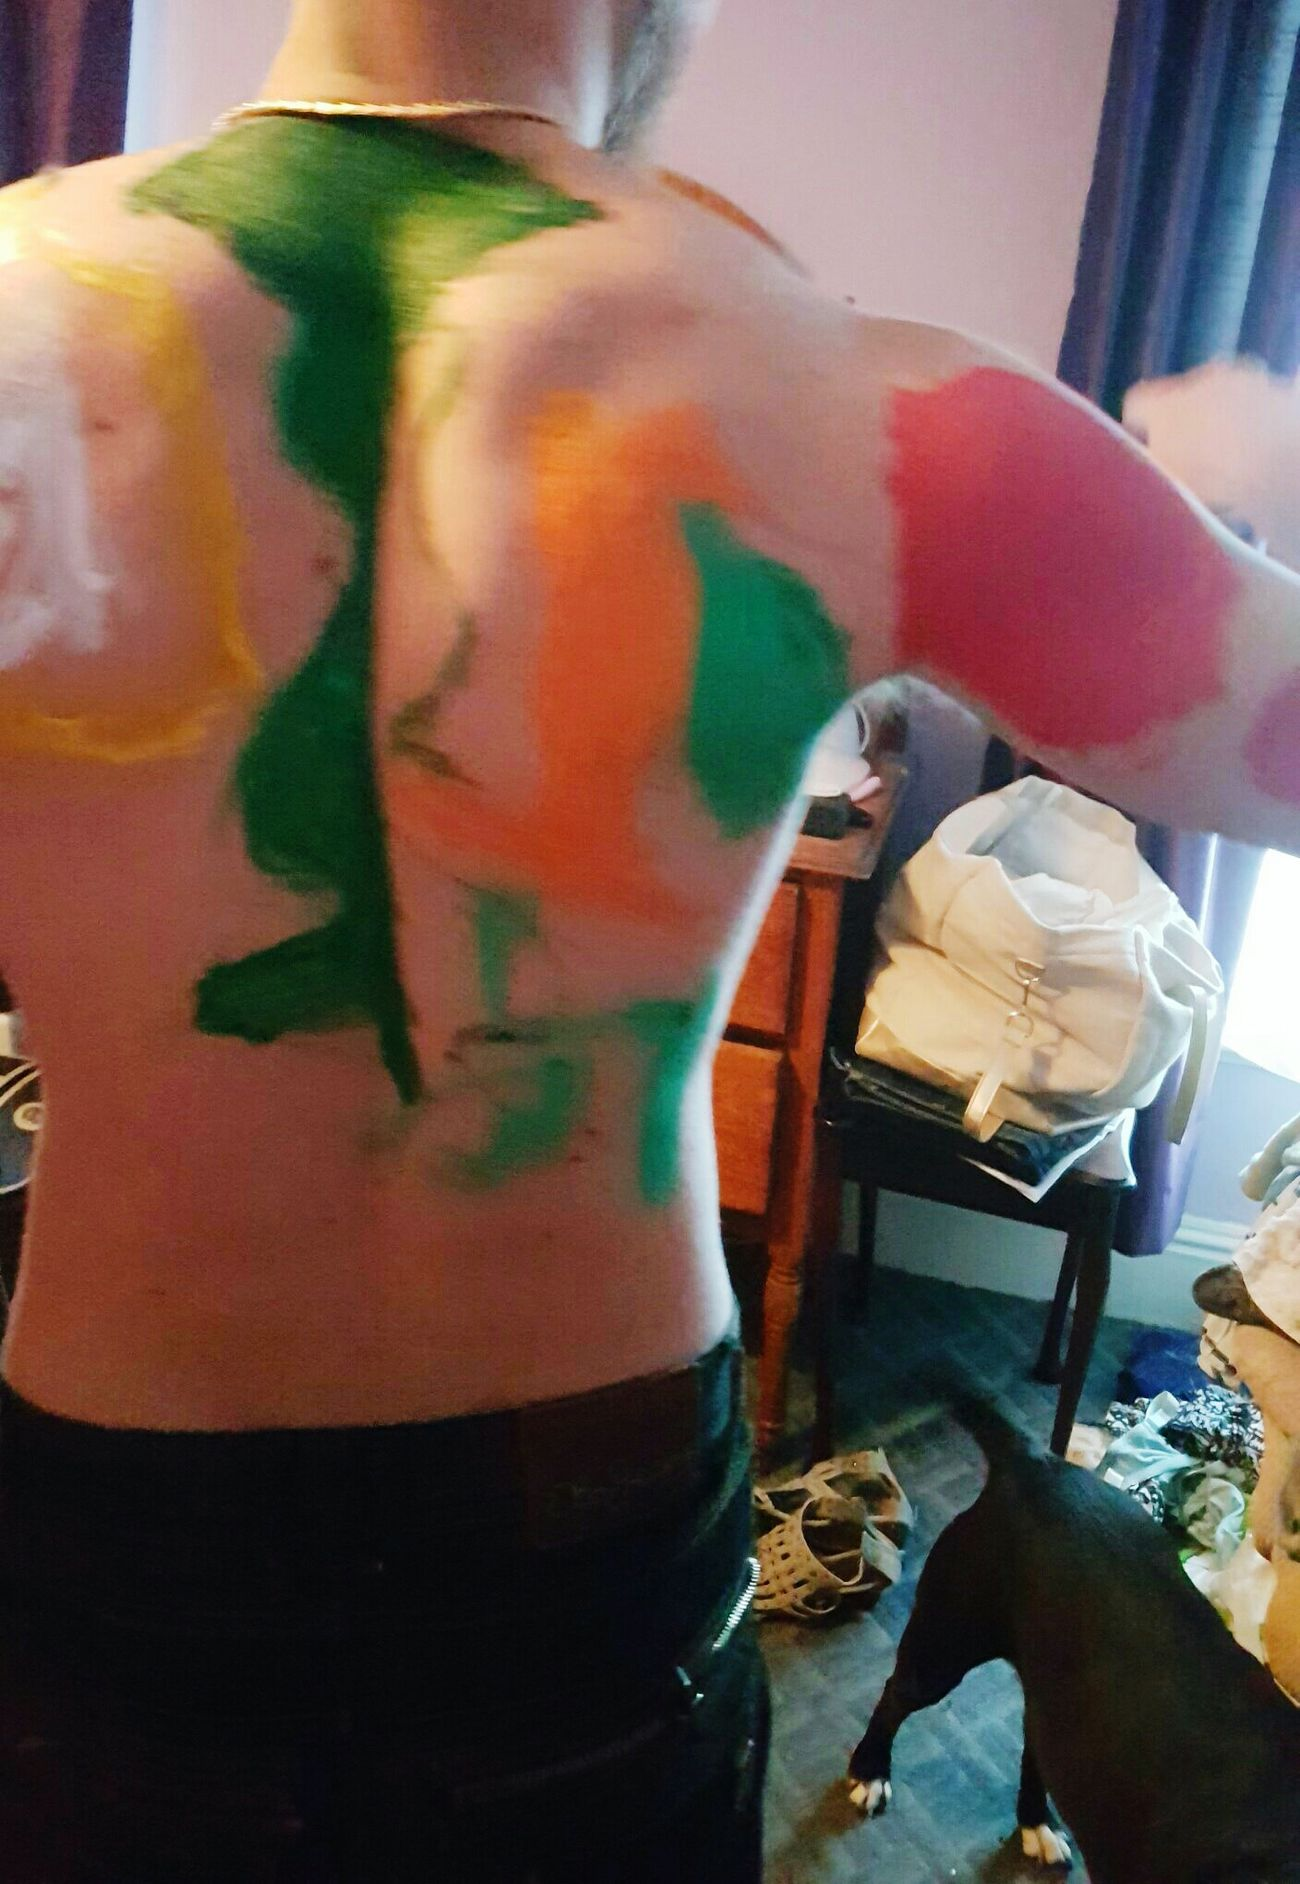 When you let you neices paint you Paint ThatsMe Funny Beautiful Canvas Bodyart Bodypainting Bodypaint Check This Out Thats Me